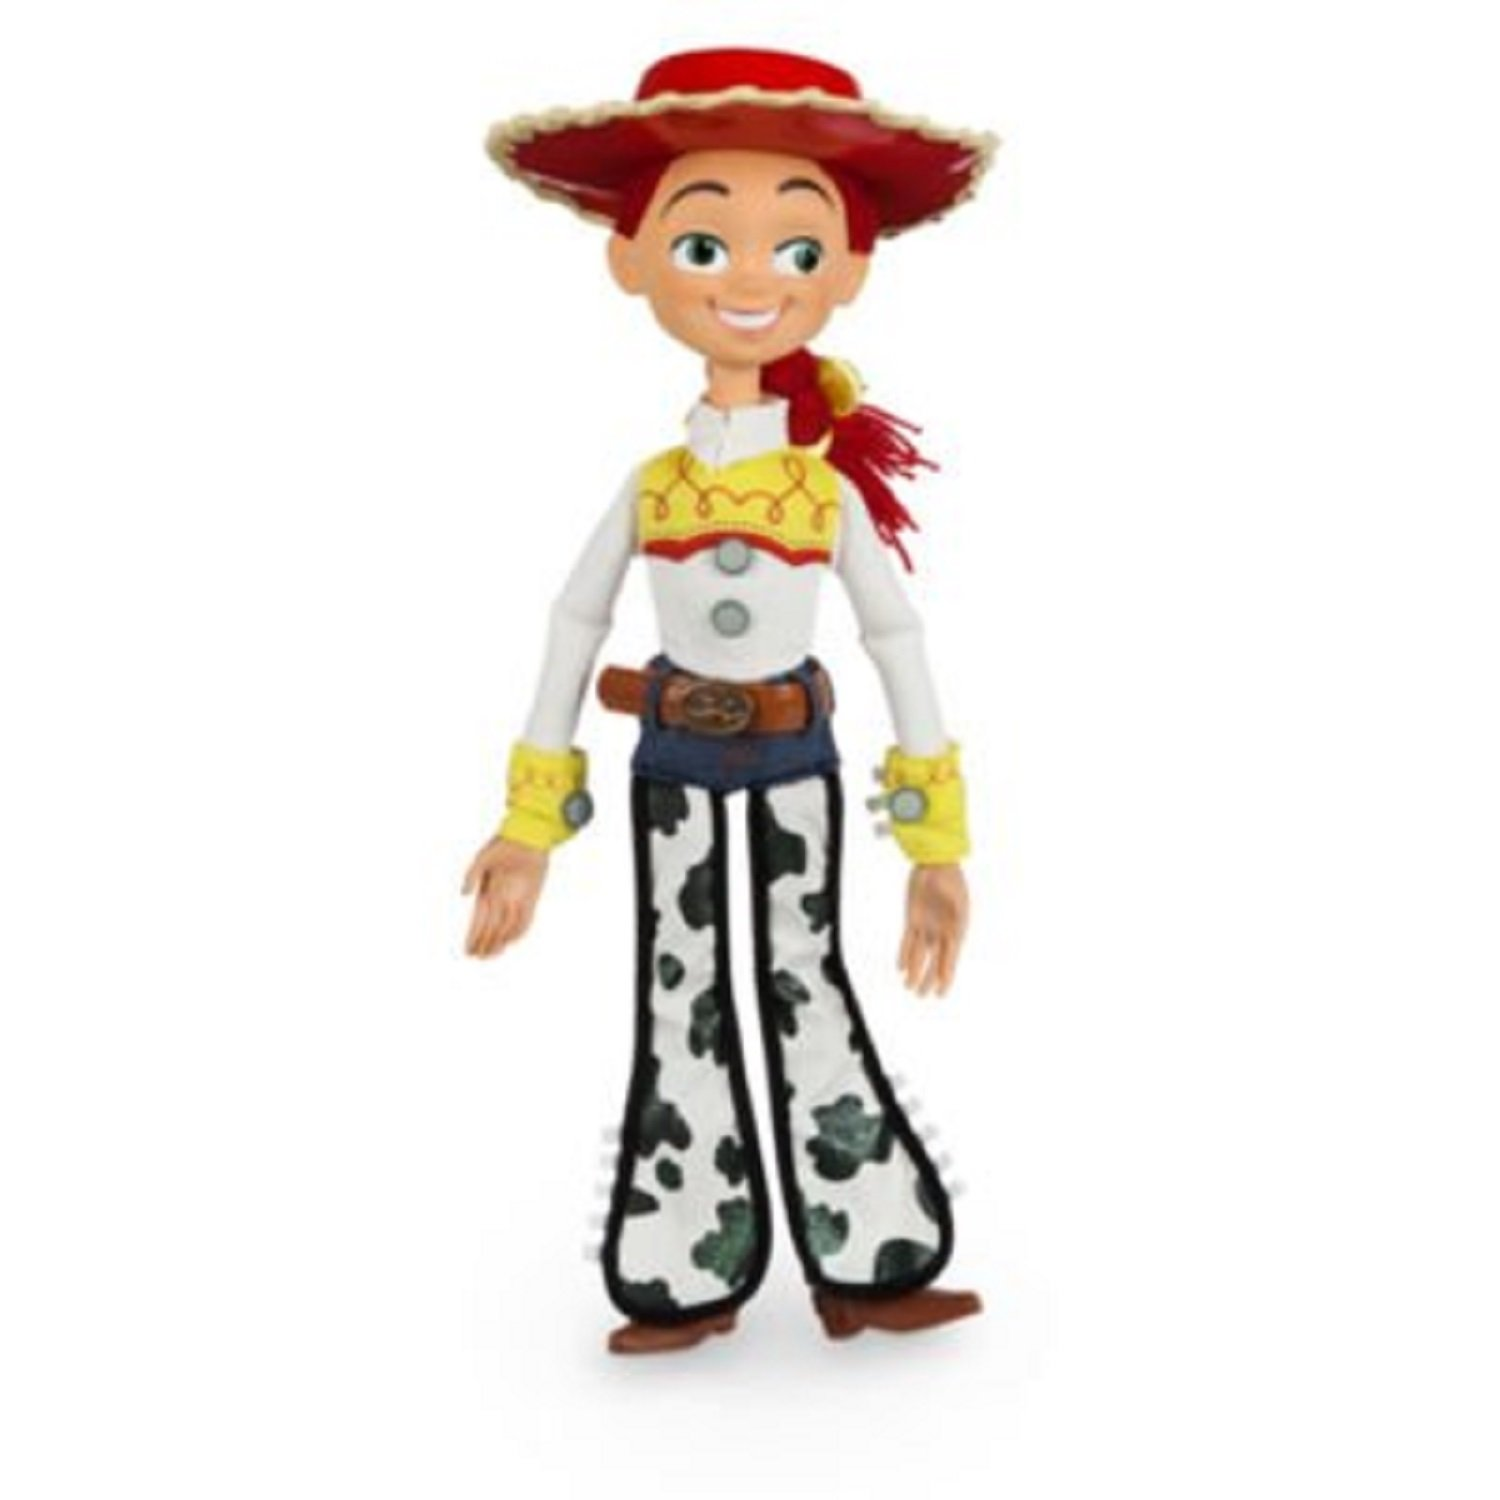 Jessie from toy story bedding - Jessie From Toy Story Bedding 38